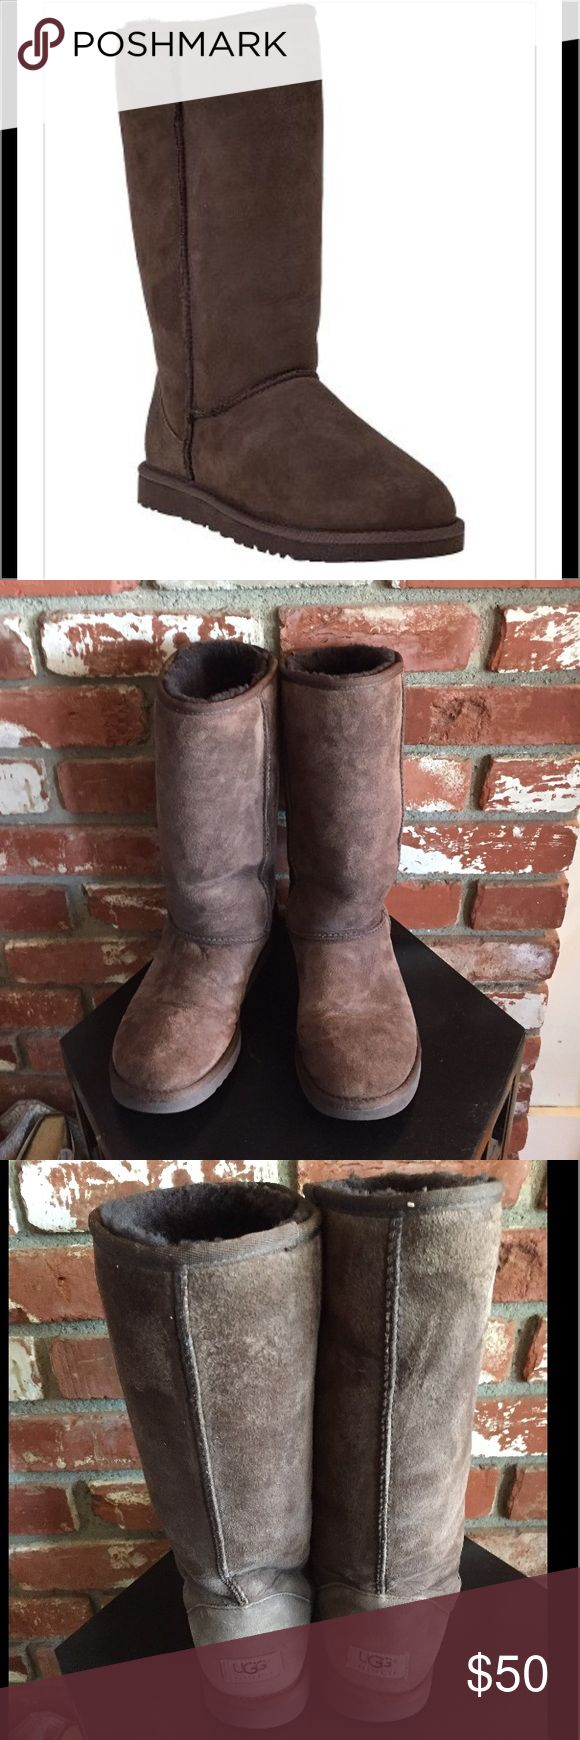 Classic Tall Ugg  Boot Chocolate size 8 Authentic pair of Classic Tall UGG Boot these are gently used in good condition. No holes, no stains. UGG Shoes Winter & Rain Boots